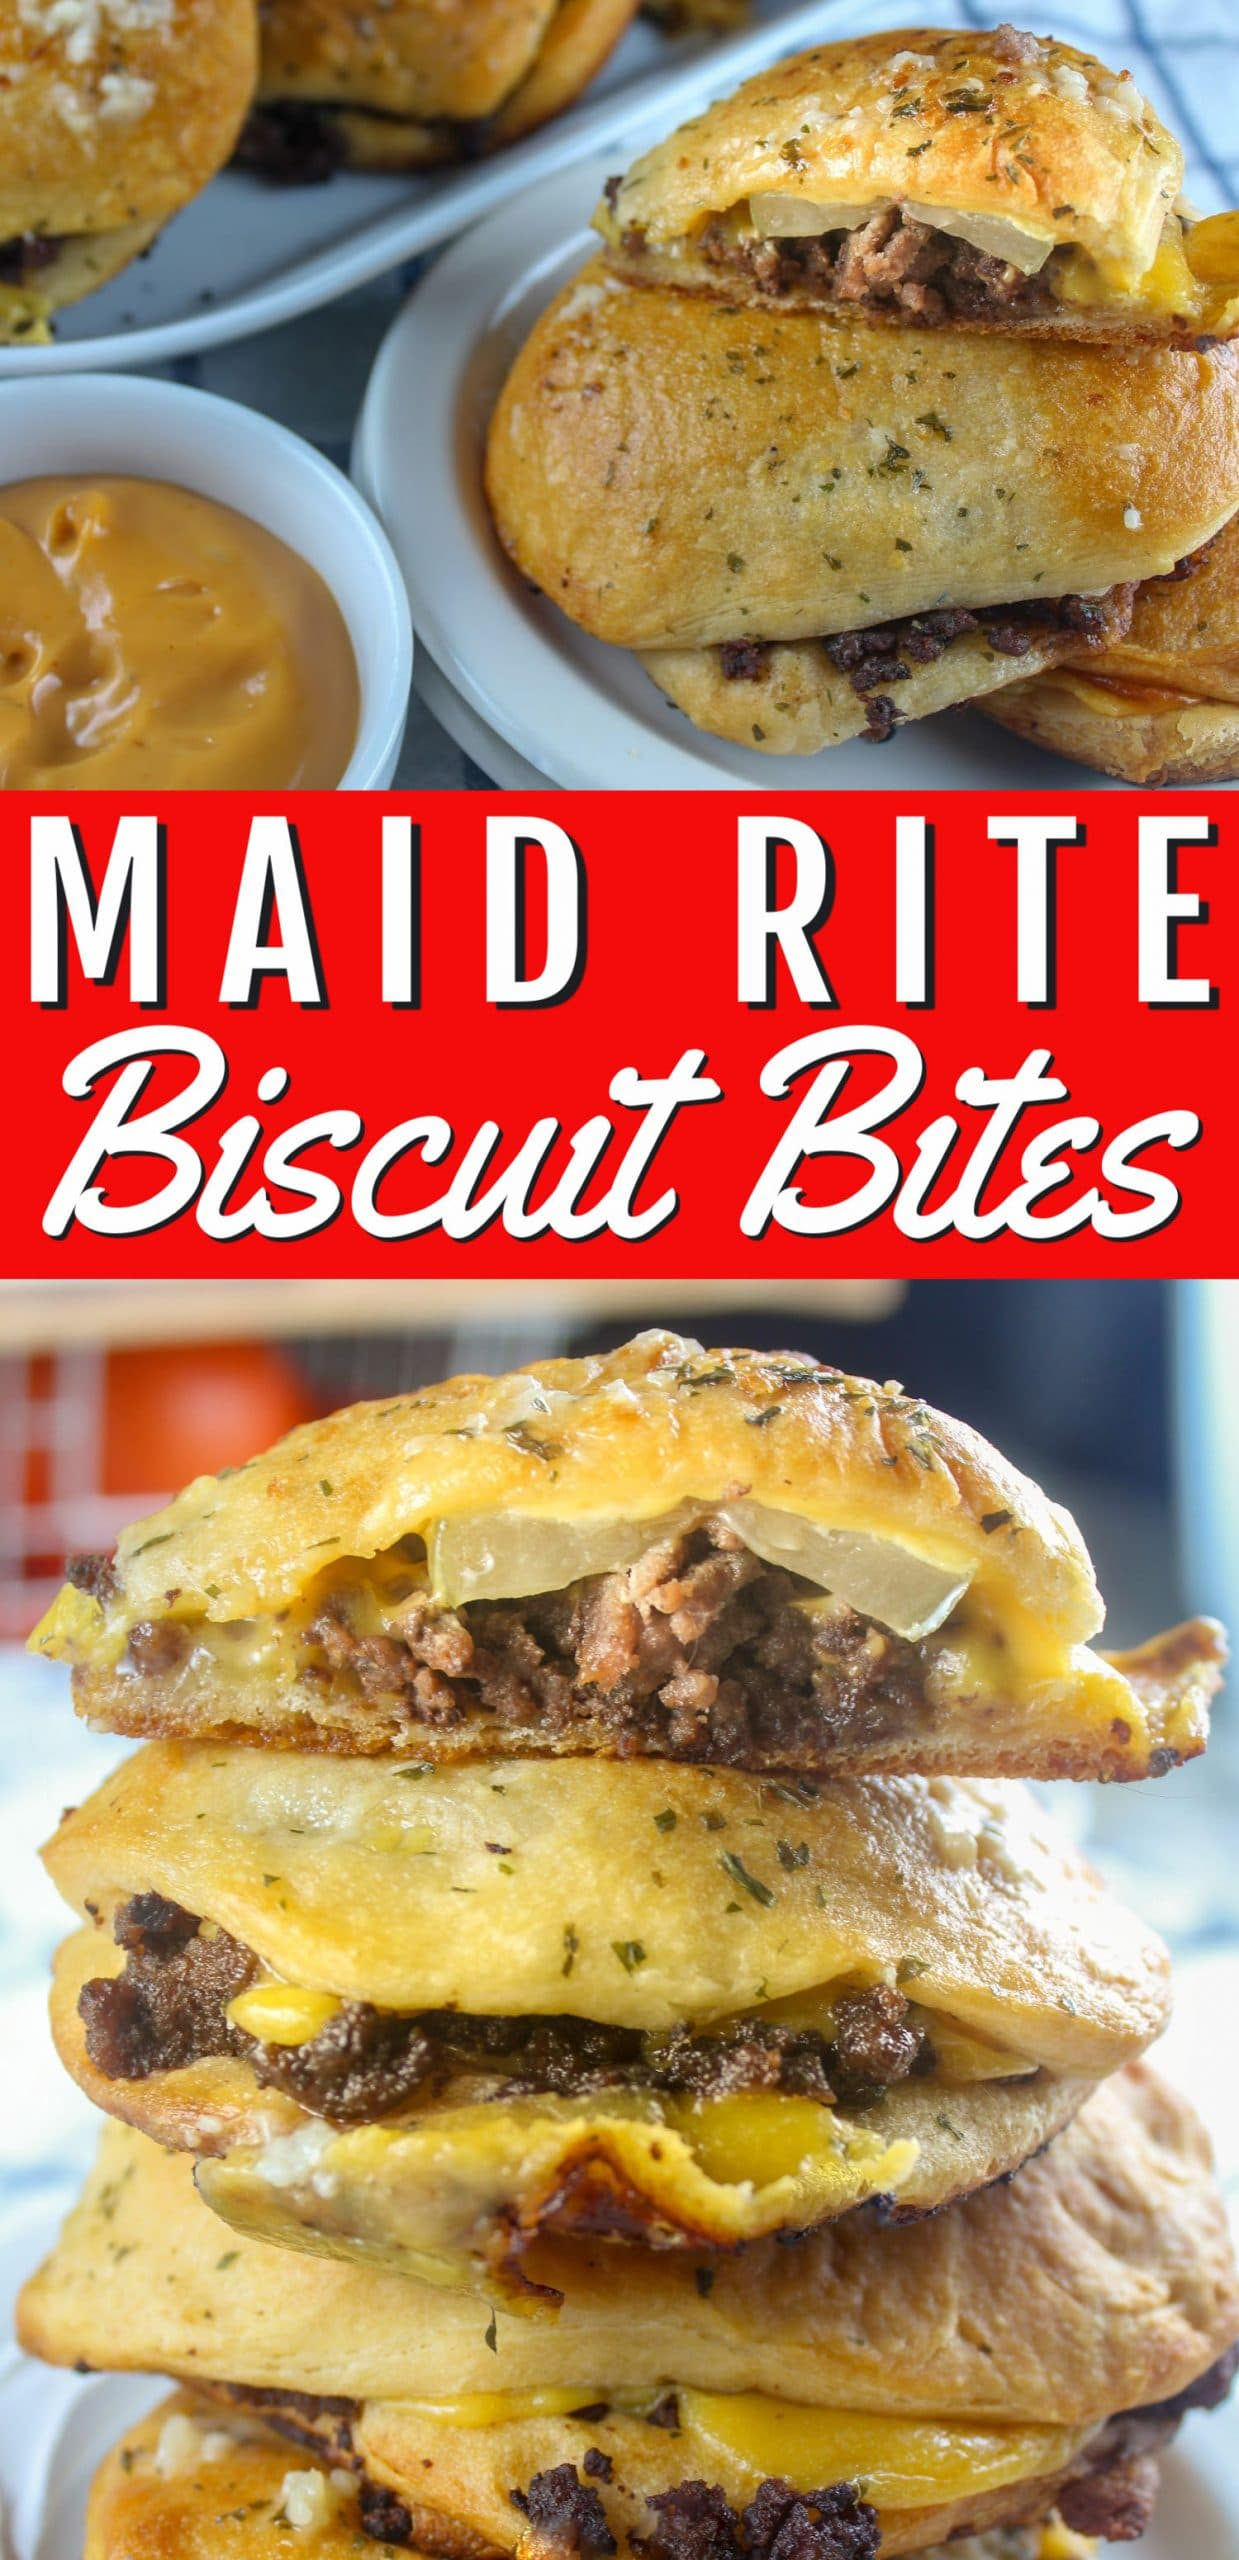 Maid Rites are my hometown favorite meal - I've been eating them since I could chew! These Maid Rite Biscuit Bites are a delicious take on the traditional sandwich made with a can of biscuits and some garlic butter - so good!!!  via @foodhussy